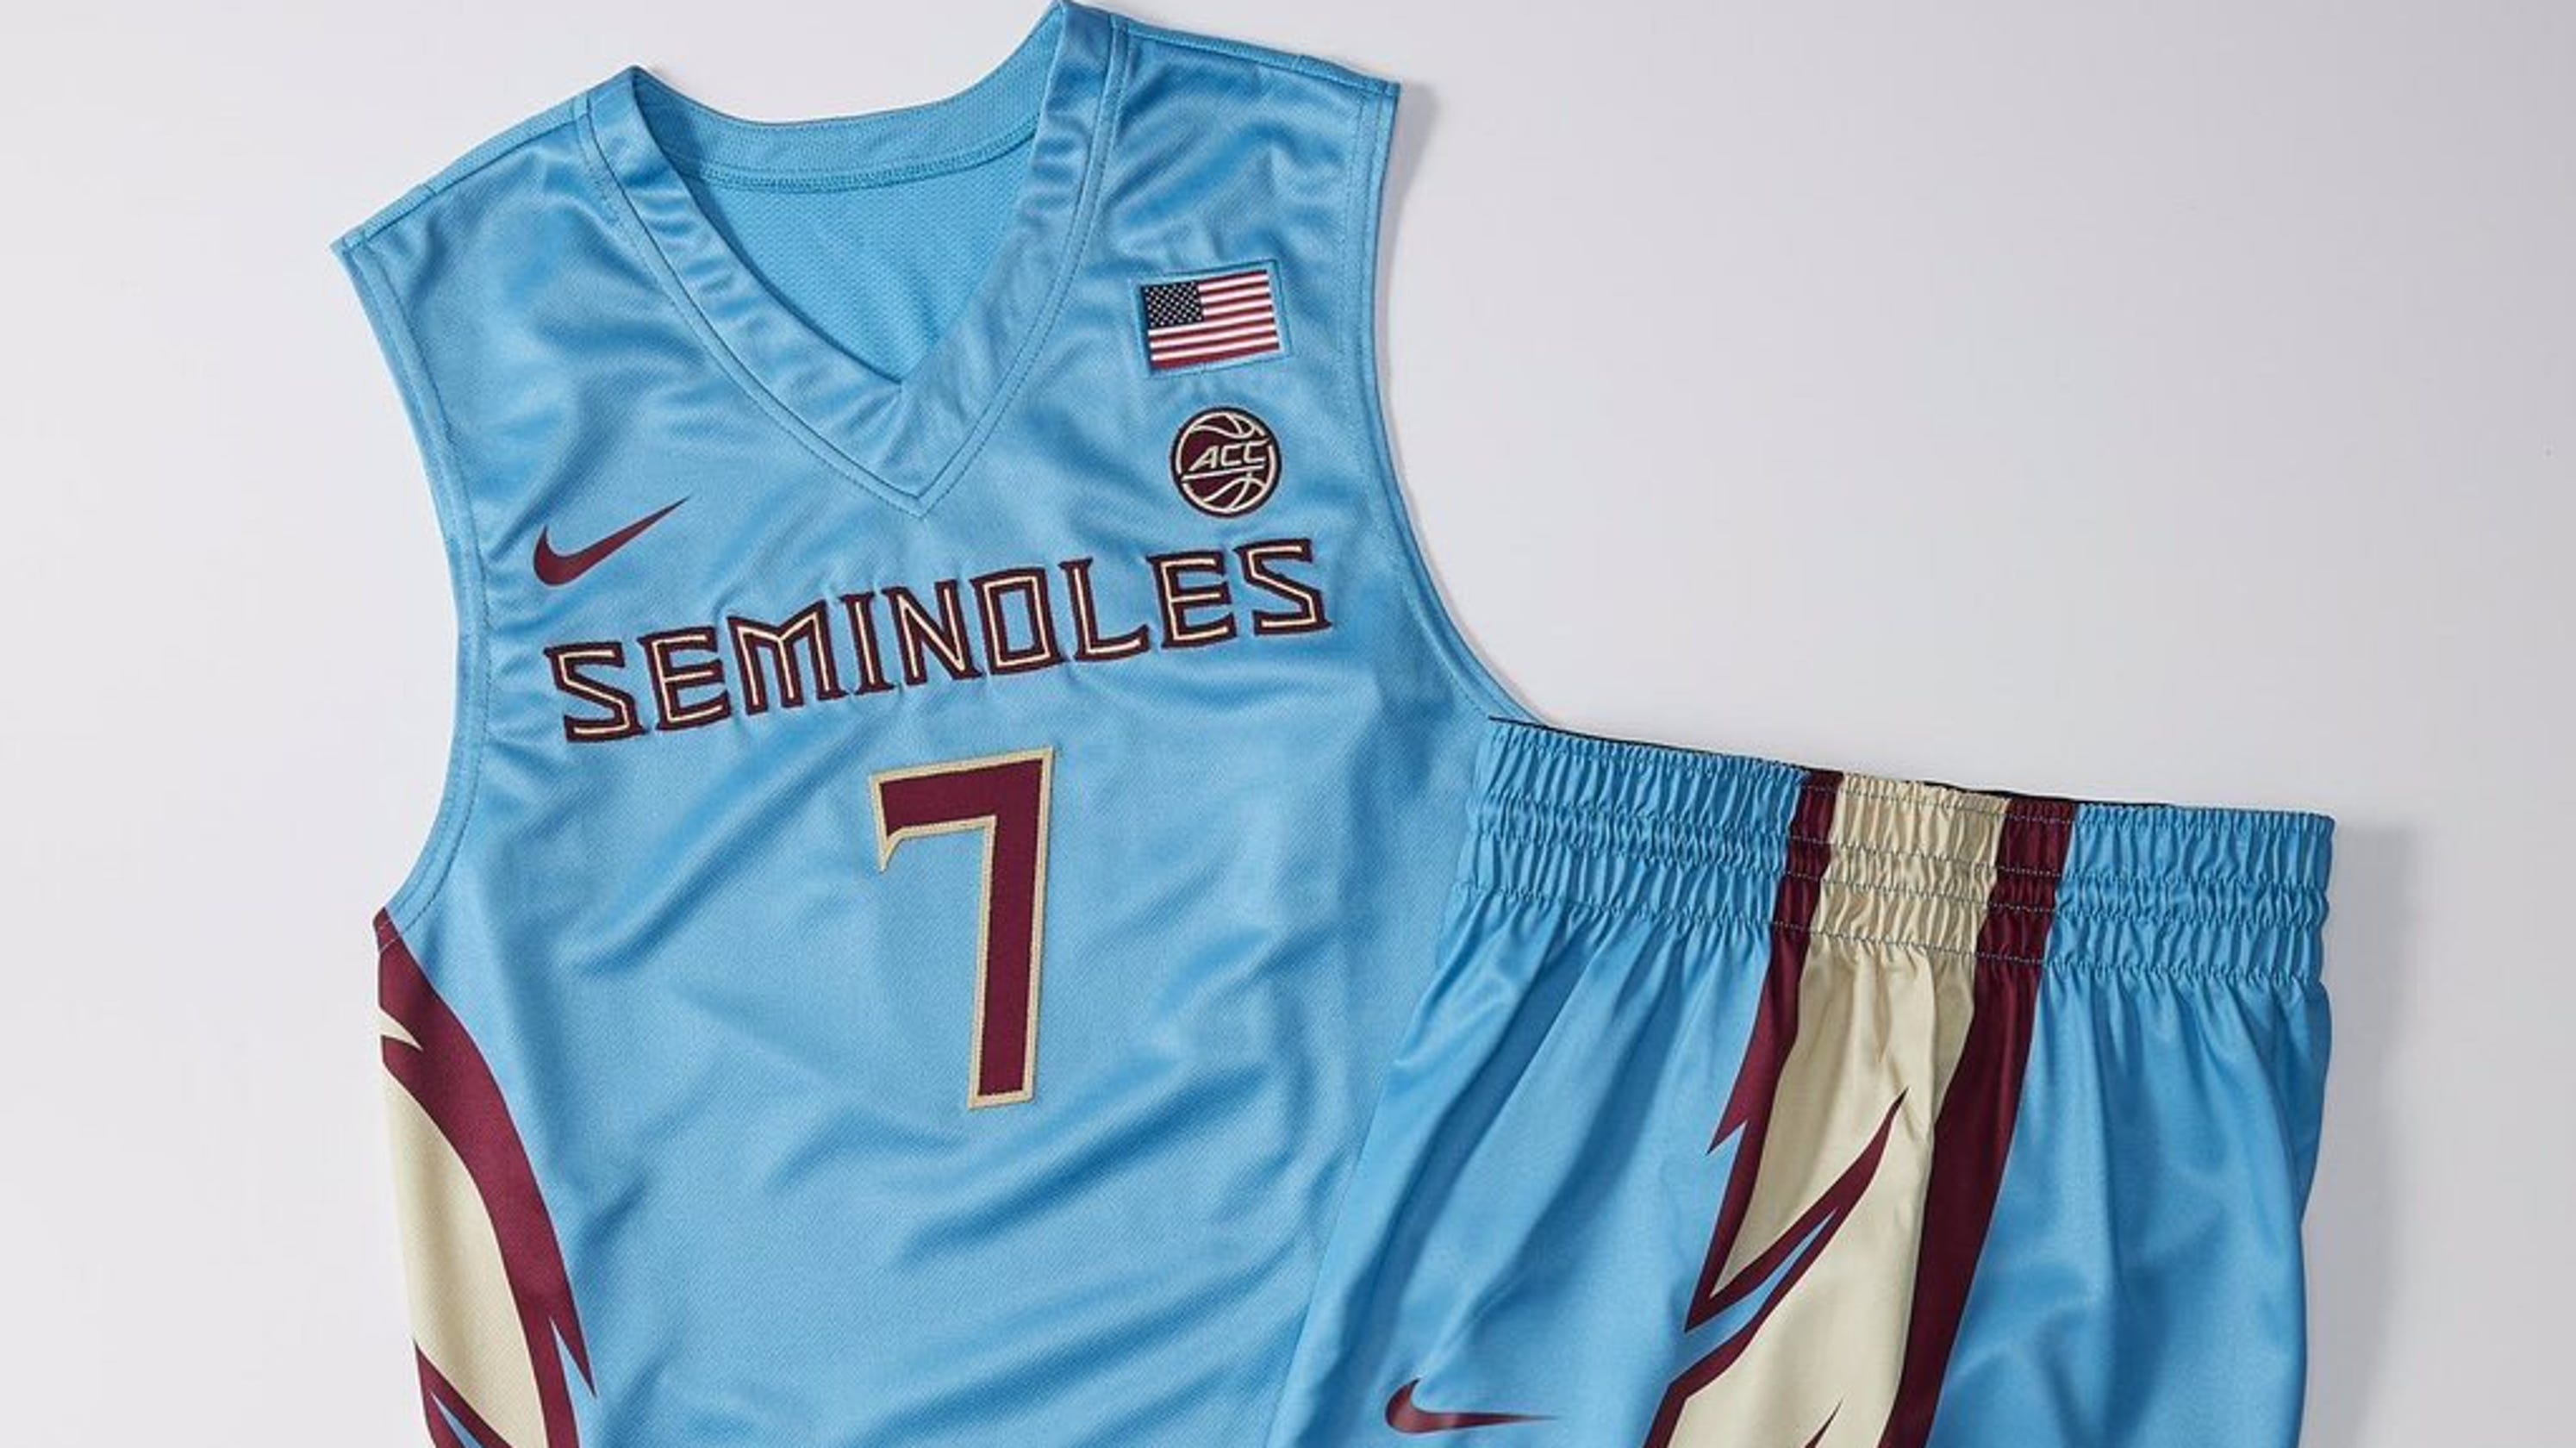 48a8c9fb2a8 Why is Florida State basketball wearing blue uniforms vs. Purdue